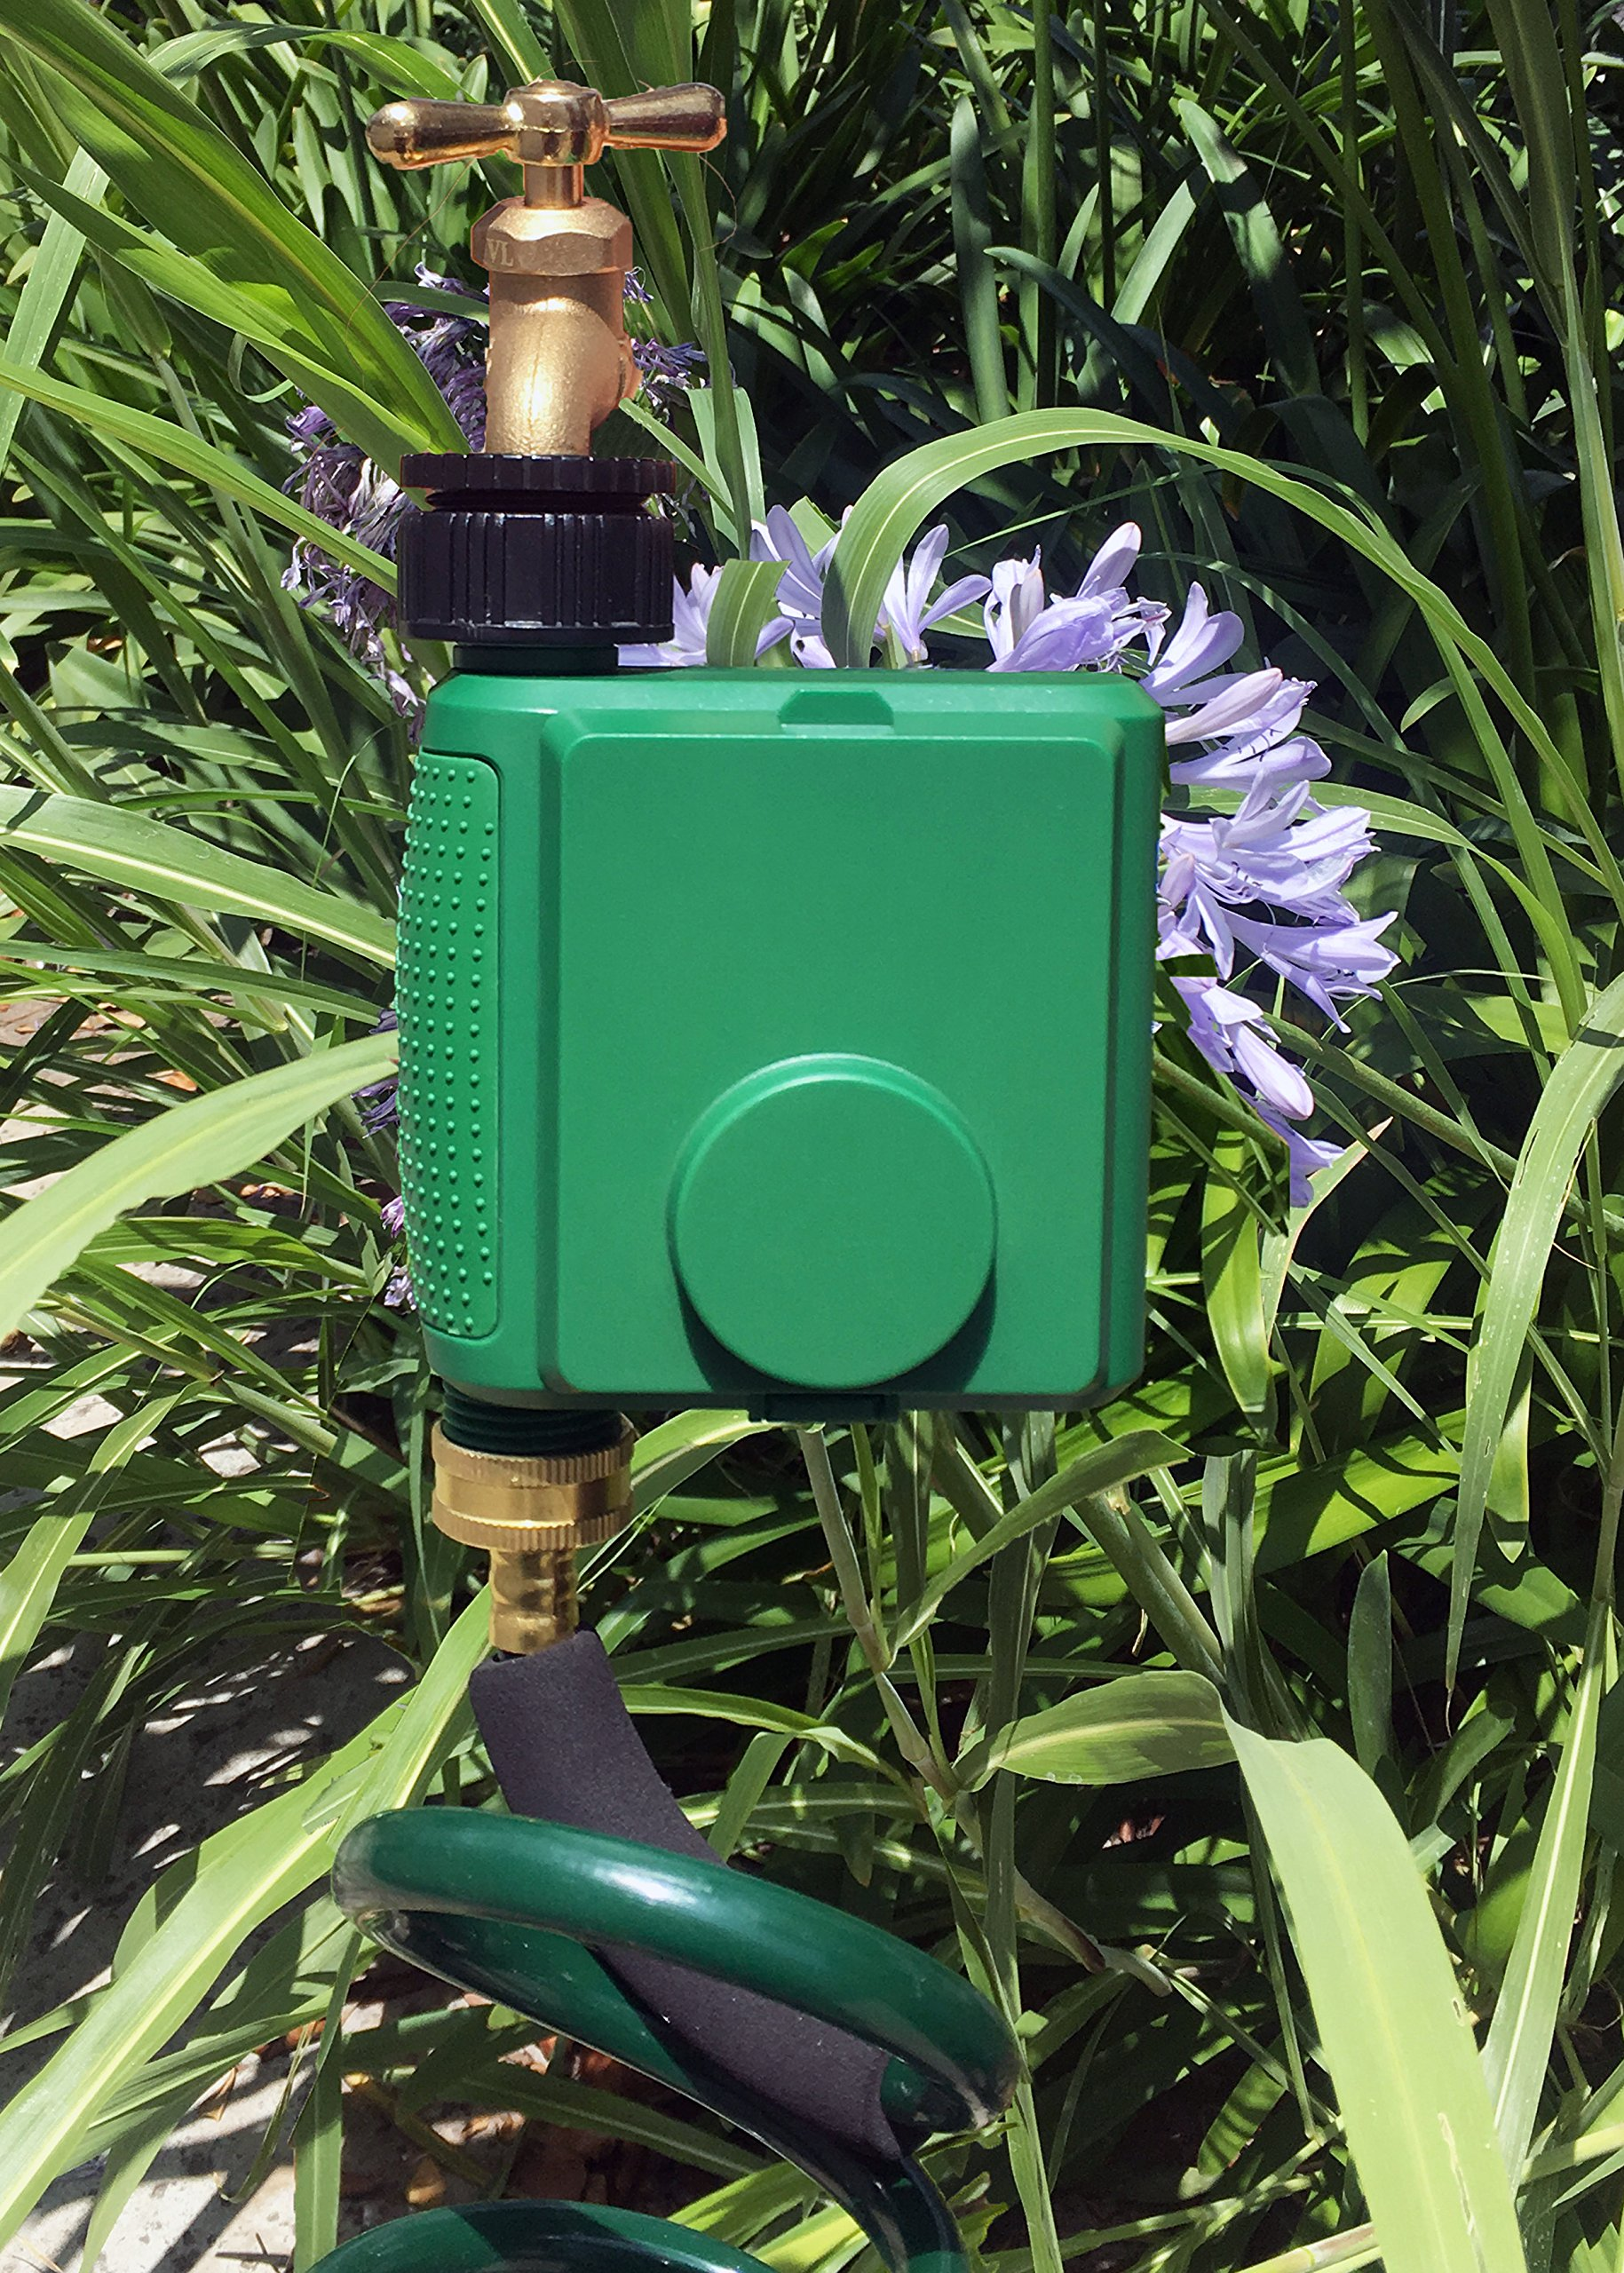 Instapark PWT-07 Outdoor Waterproof Digital Programmable Single Outlet Automatic On Off Water Faucet Hose Timer with Rain Delay and Manual Control by Instapark (Image #7)